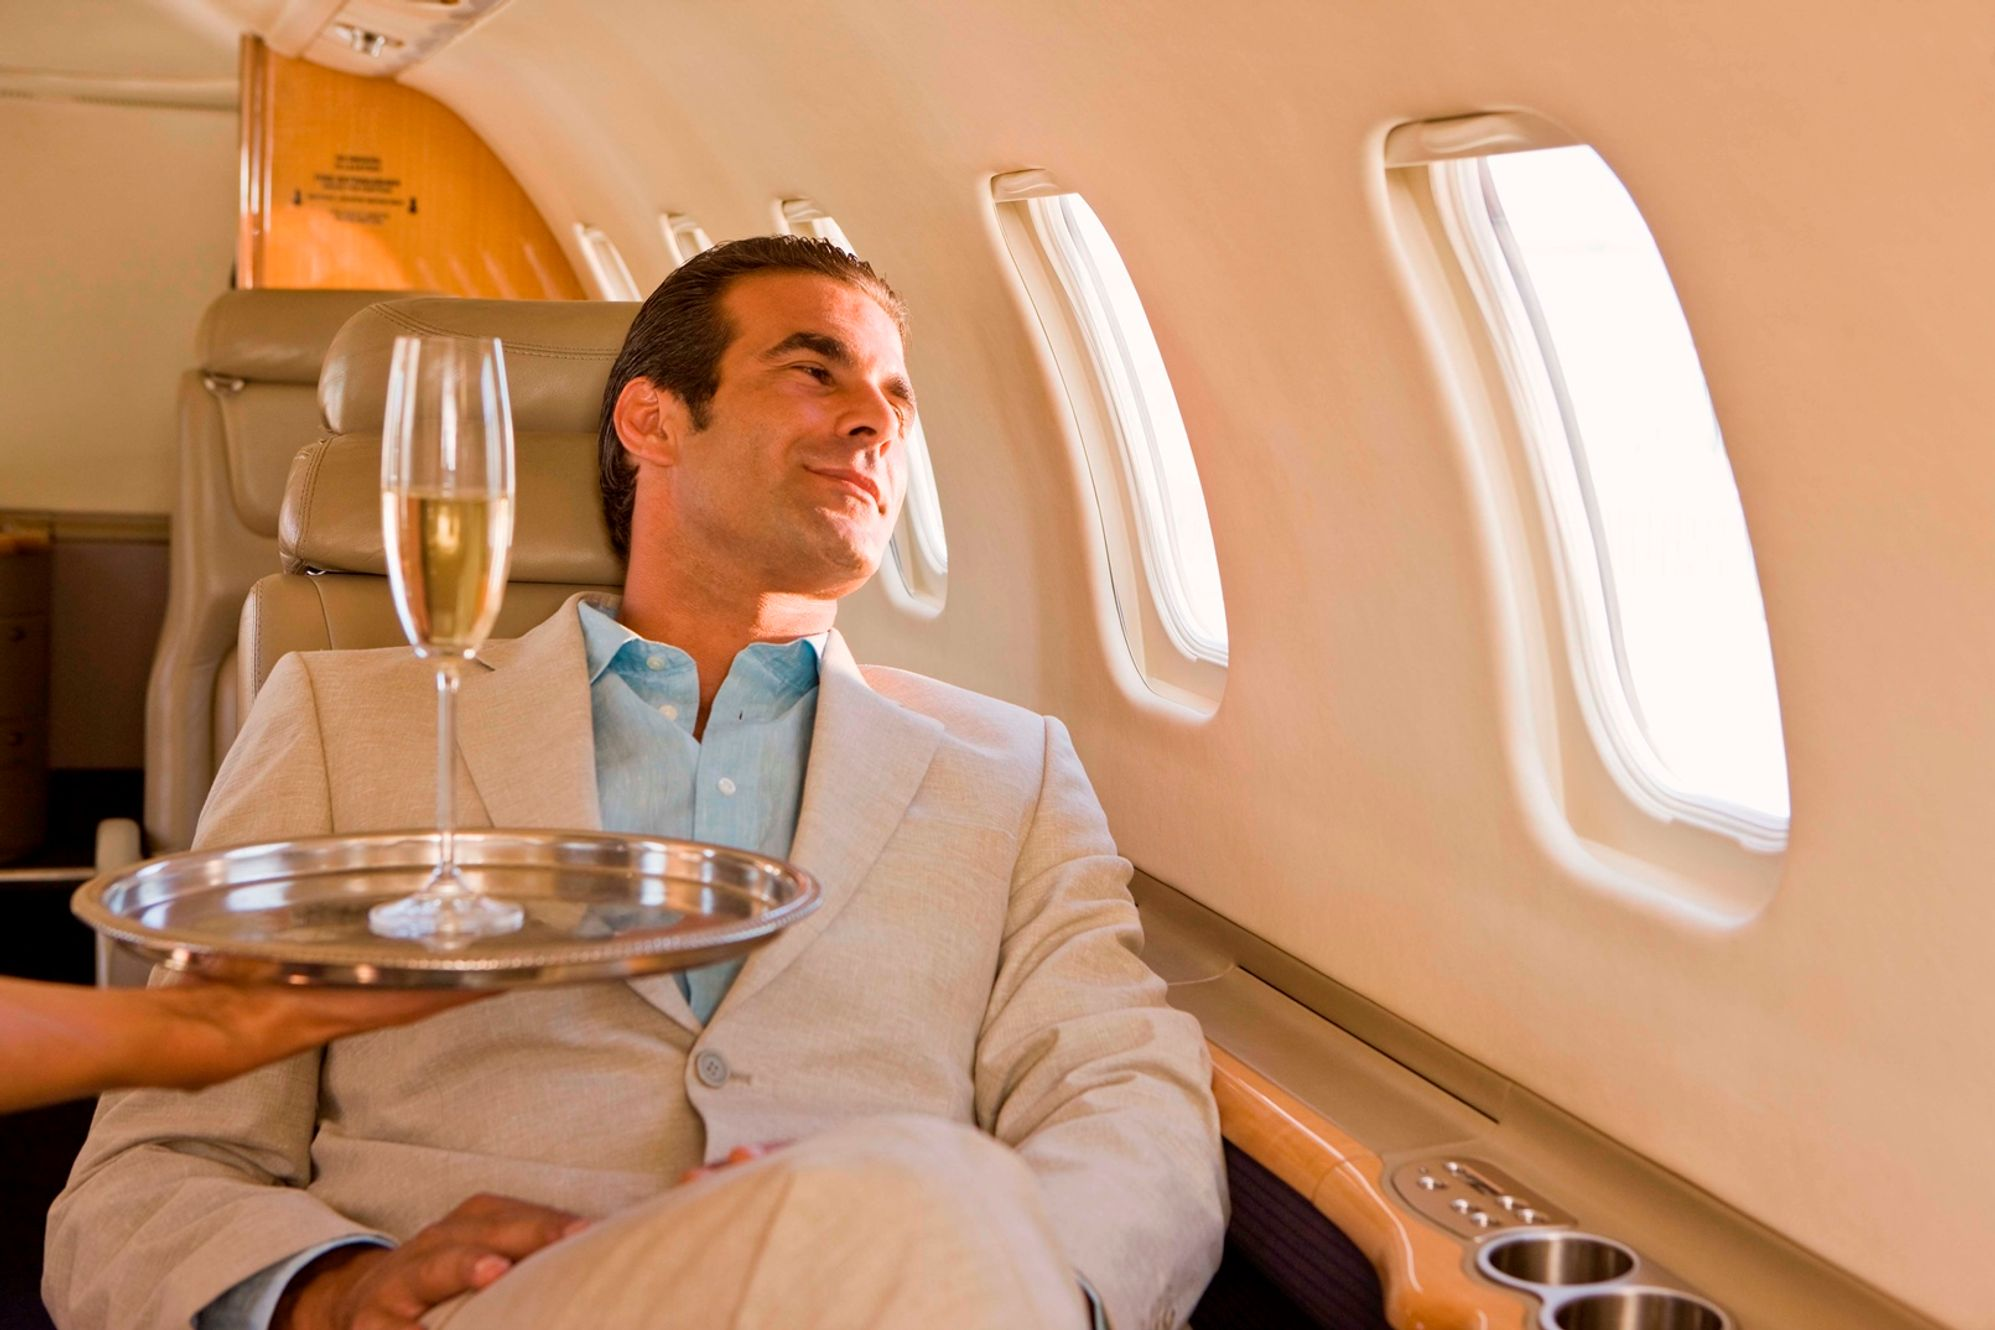 Man traveller offered champagne in first class - 10 things you should never do when flying